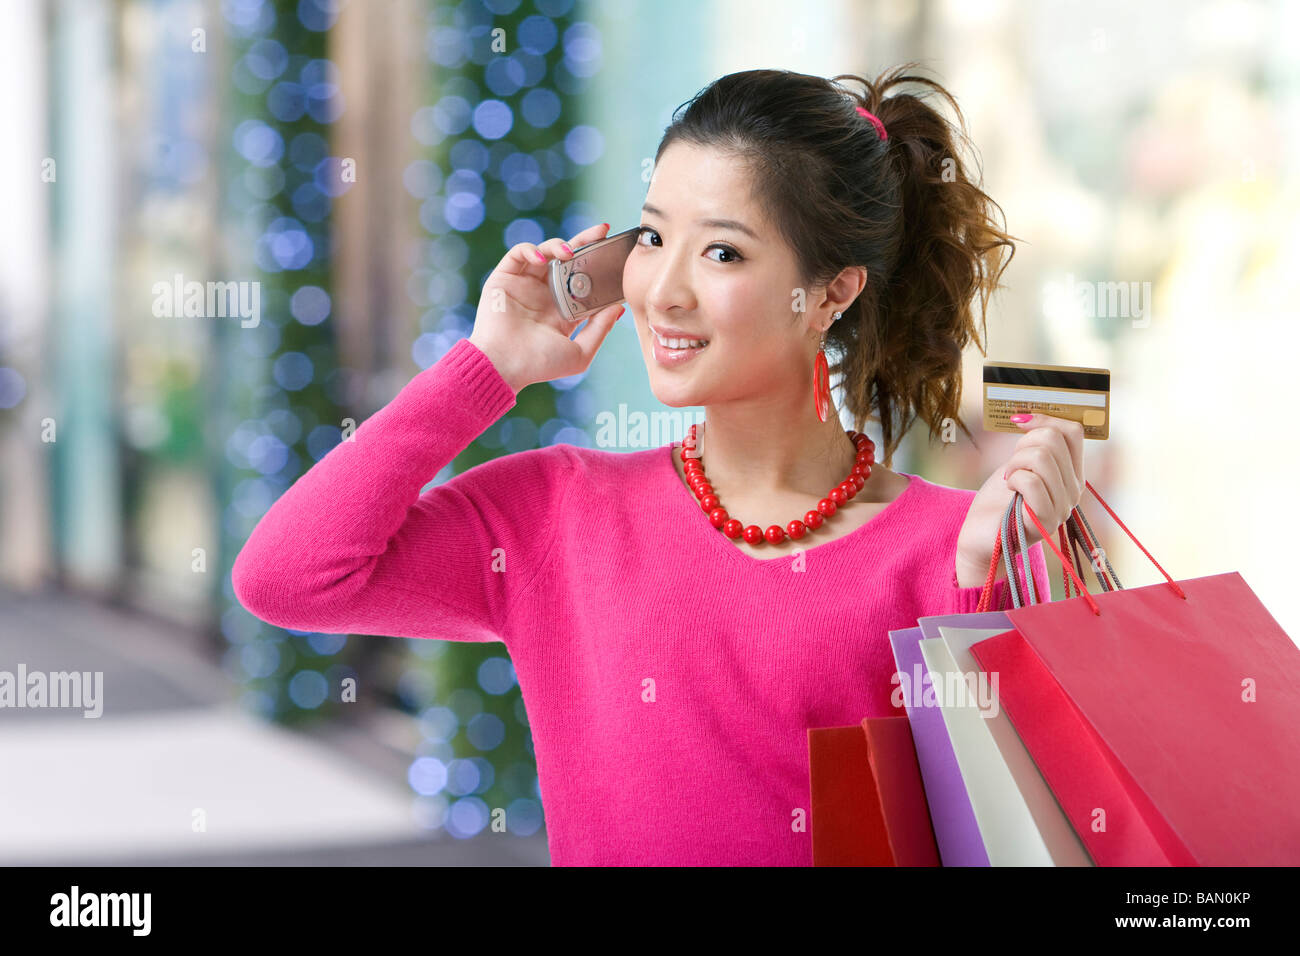 Young woman holding up her mobile phone and credit card out shopping - Stock Image